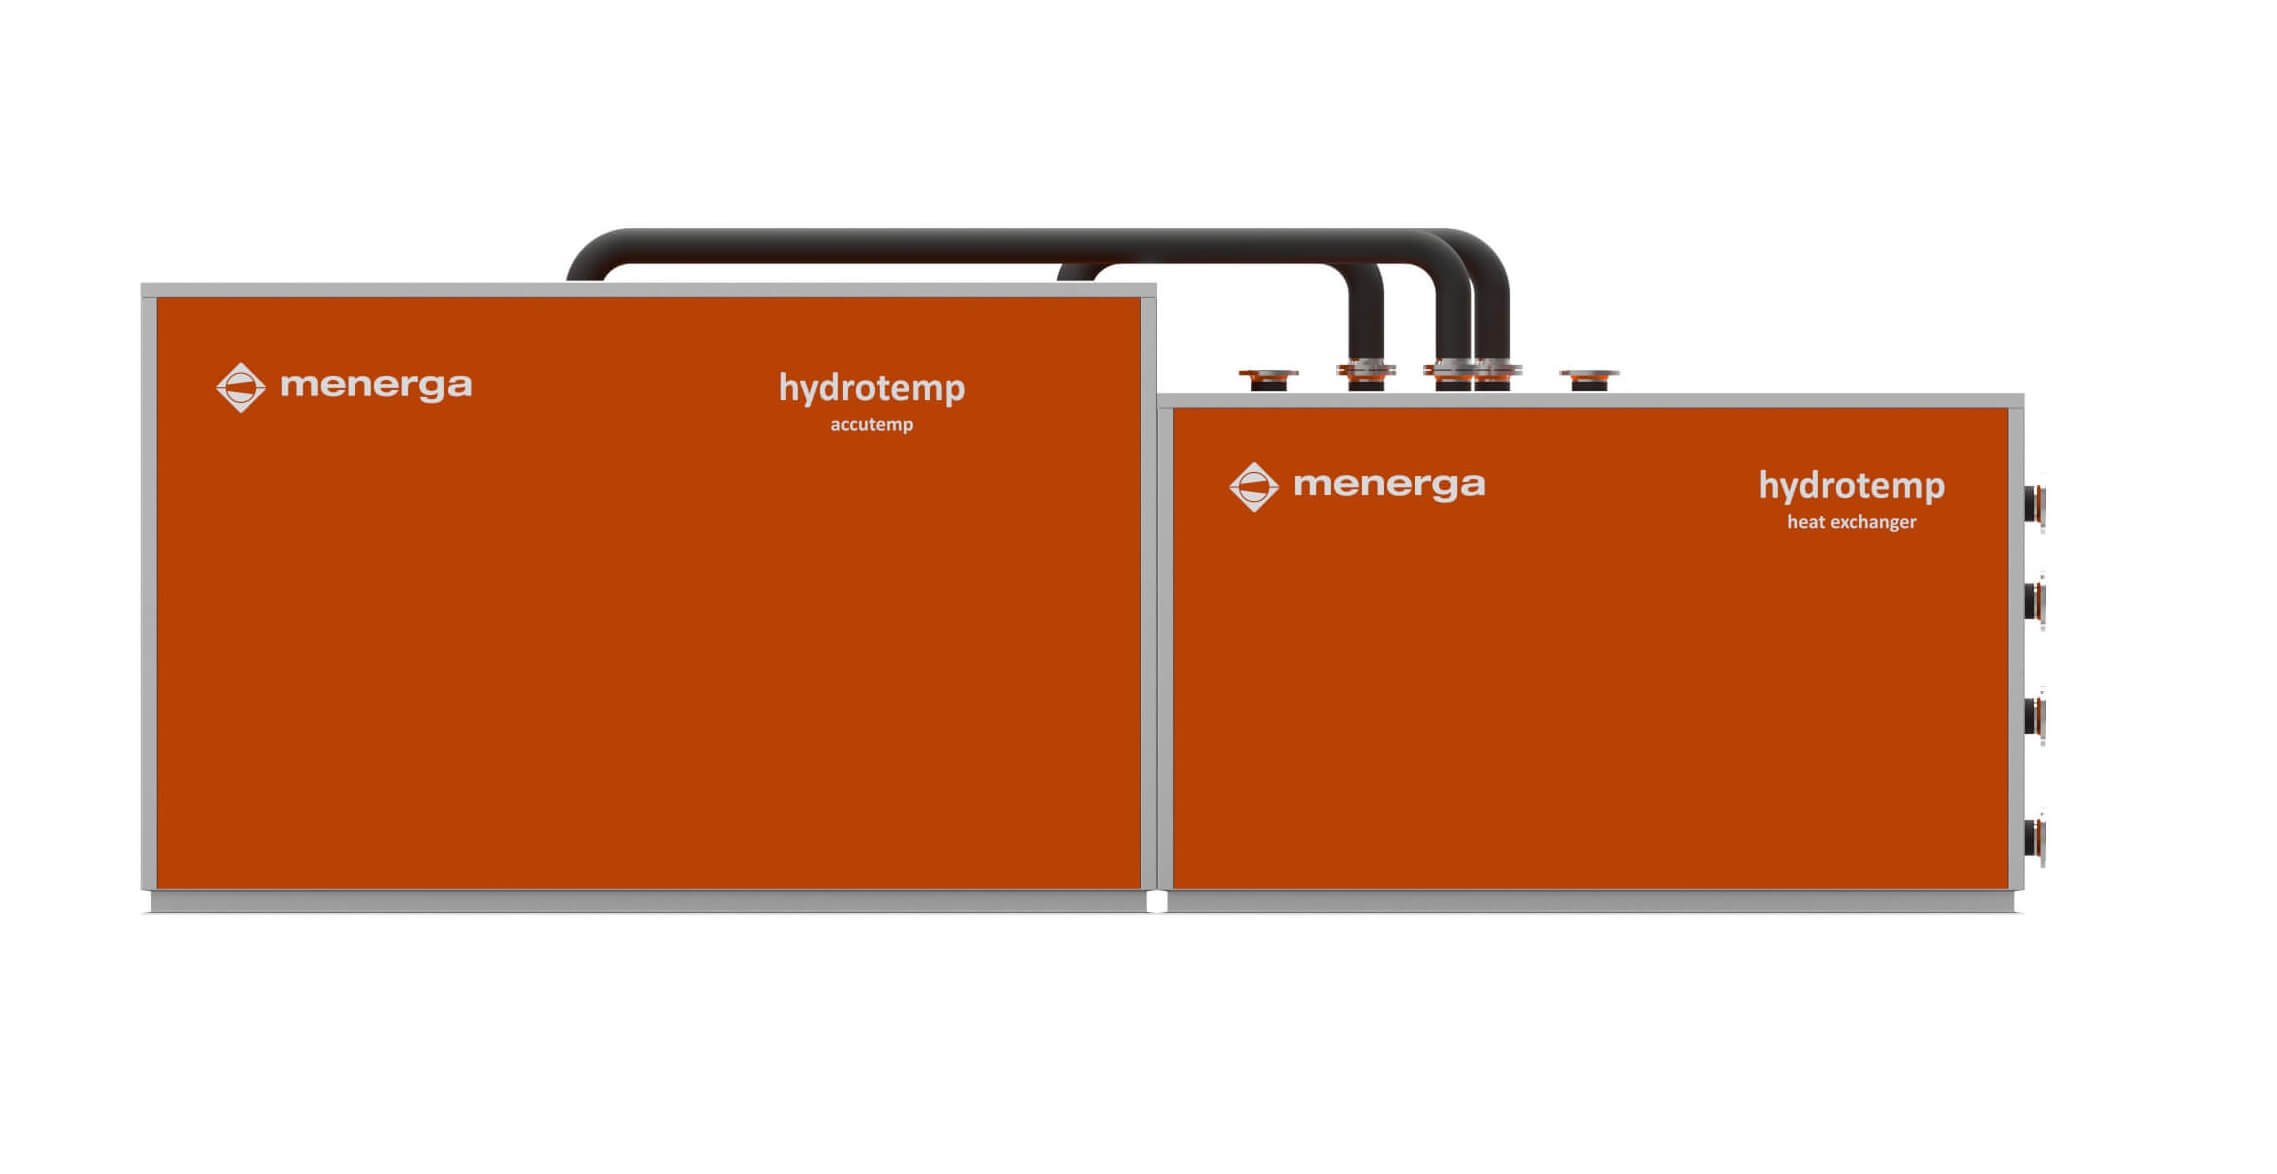 Hydrotemp_solution for preparation of cooling and heating energy_1a